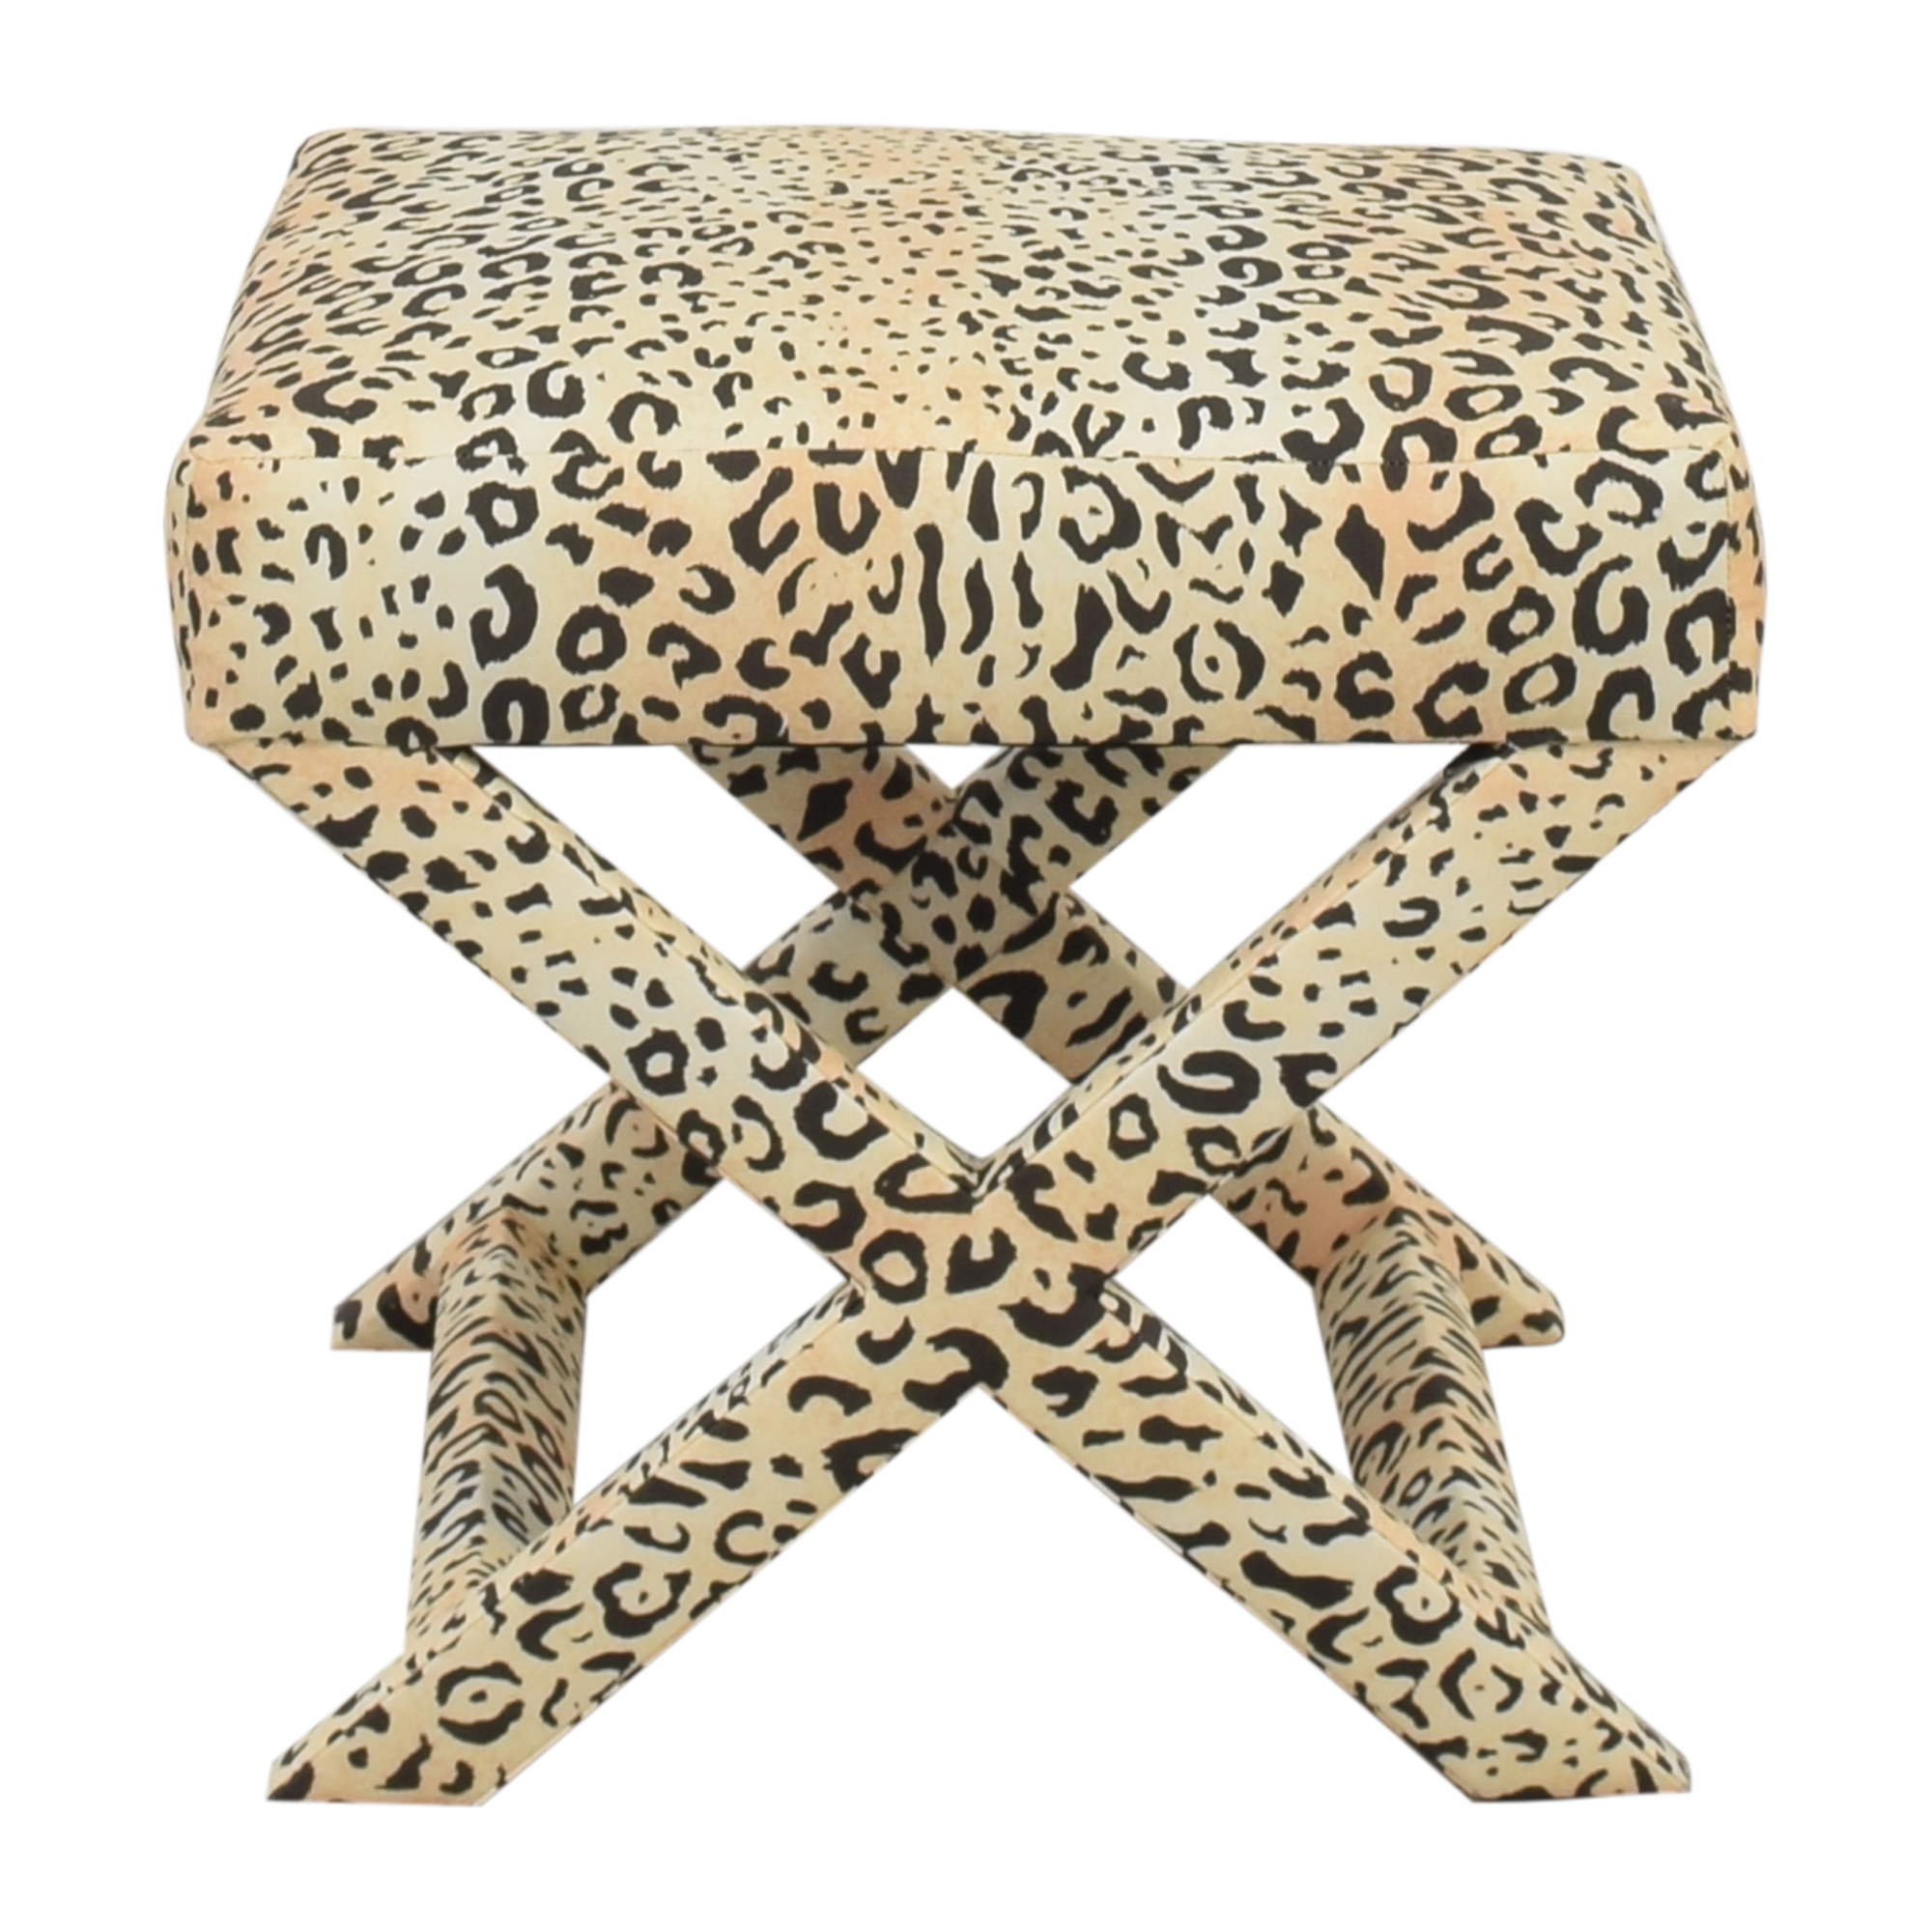 buy The Inside X-Bench in Leopard The Inside Decor